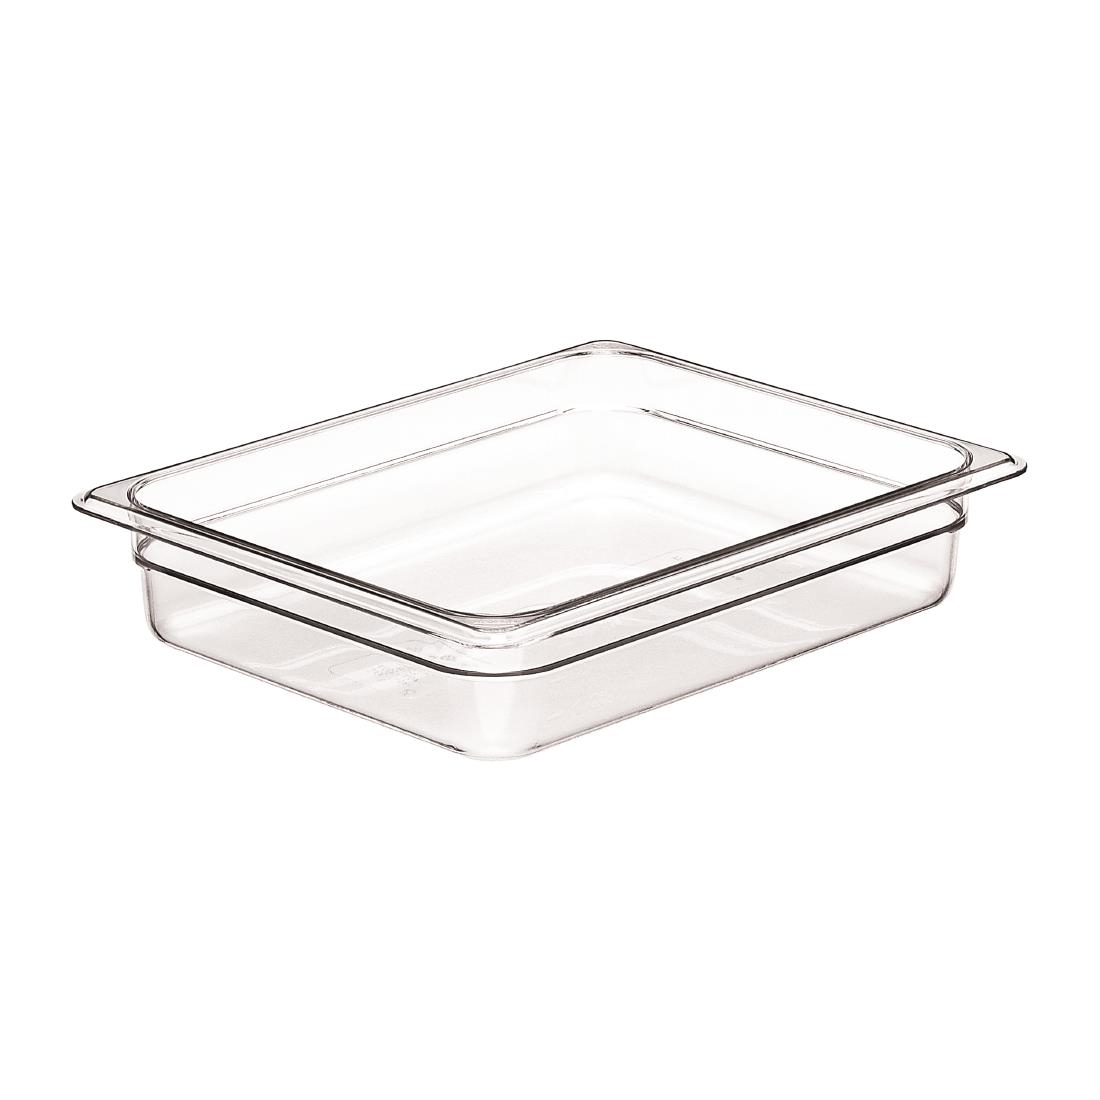 Take Out Disposable Foil Containers with Matching Covers Pactiv 7139 50 3-Compartment Aluminum Foil Pans Combo with Flat Foil Lids